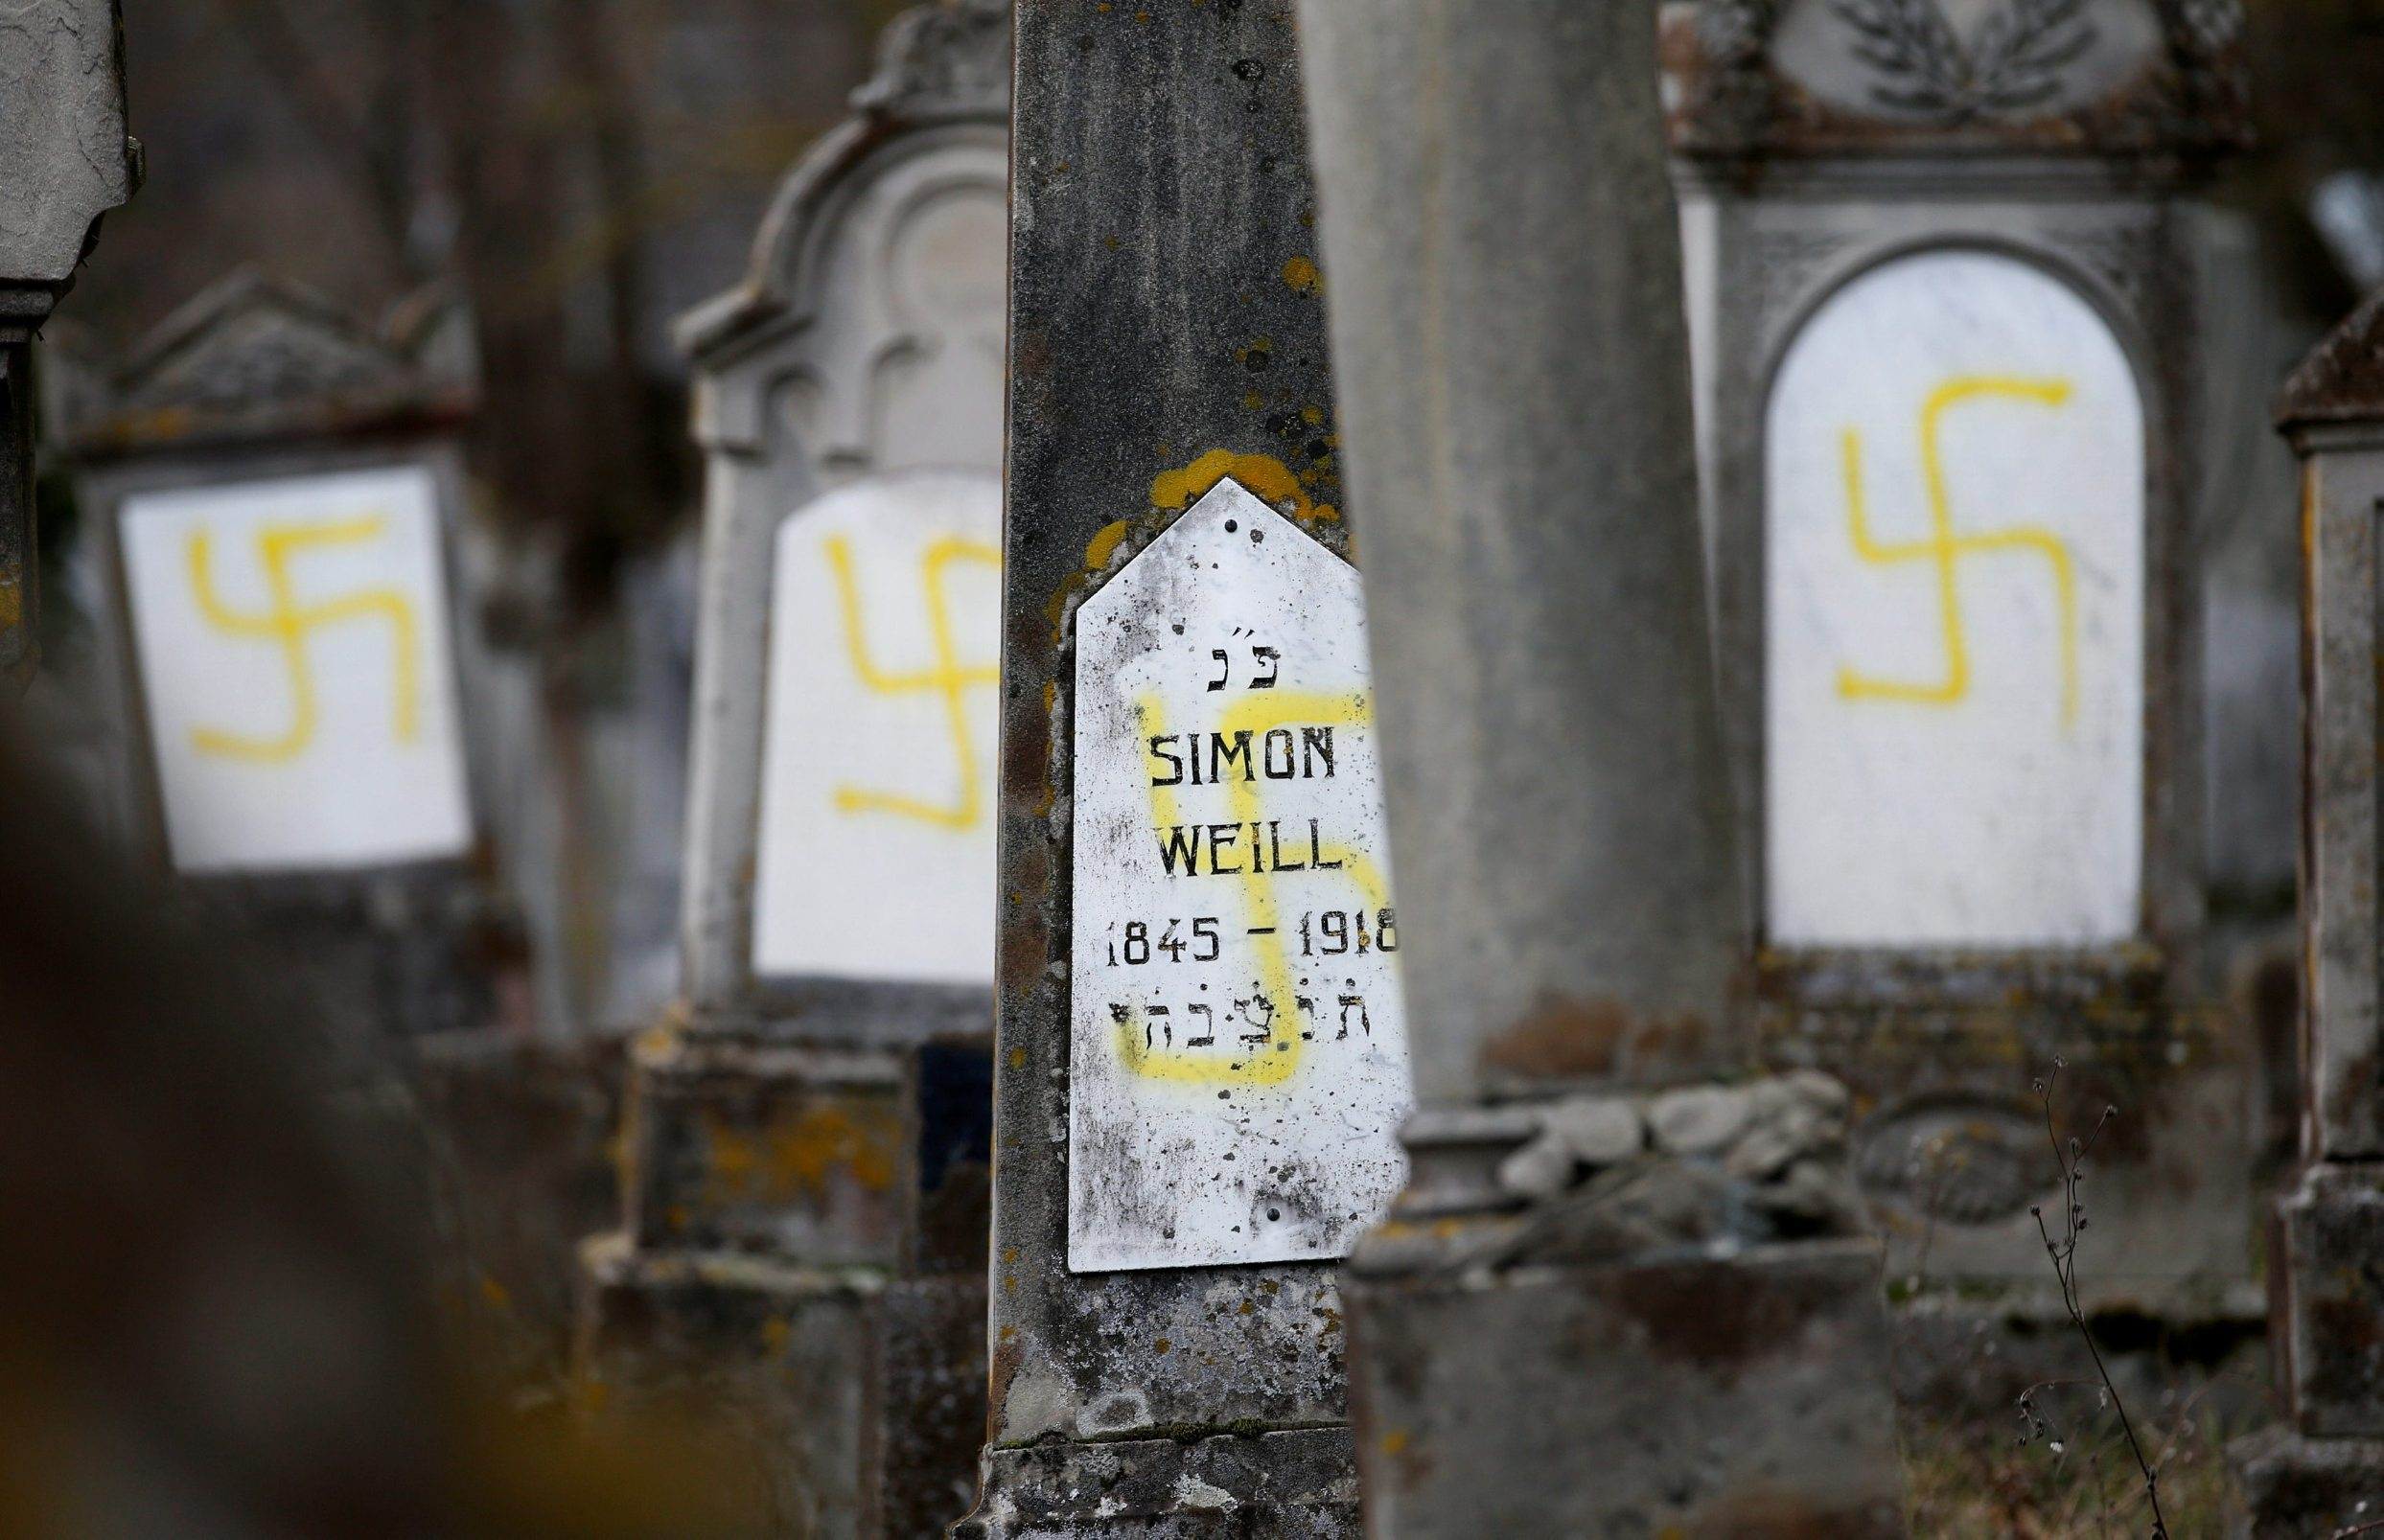 Graves that were desecrated with swastikas are seen at the Jewish cemetery in Quatzenheim, near Strasbourg, France, February 19, 2019. REUTERS/Vincent Kessler      TPX IMAGES OF THE DAY